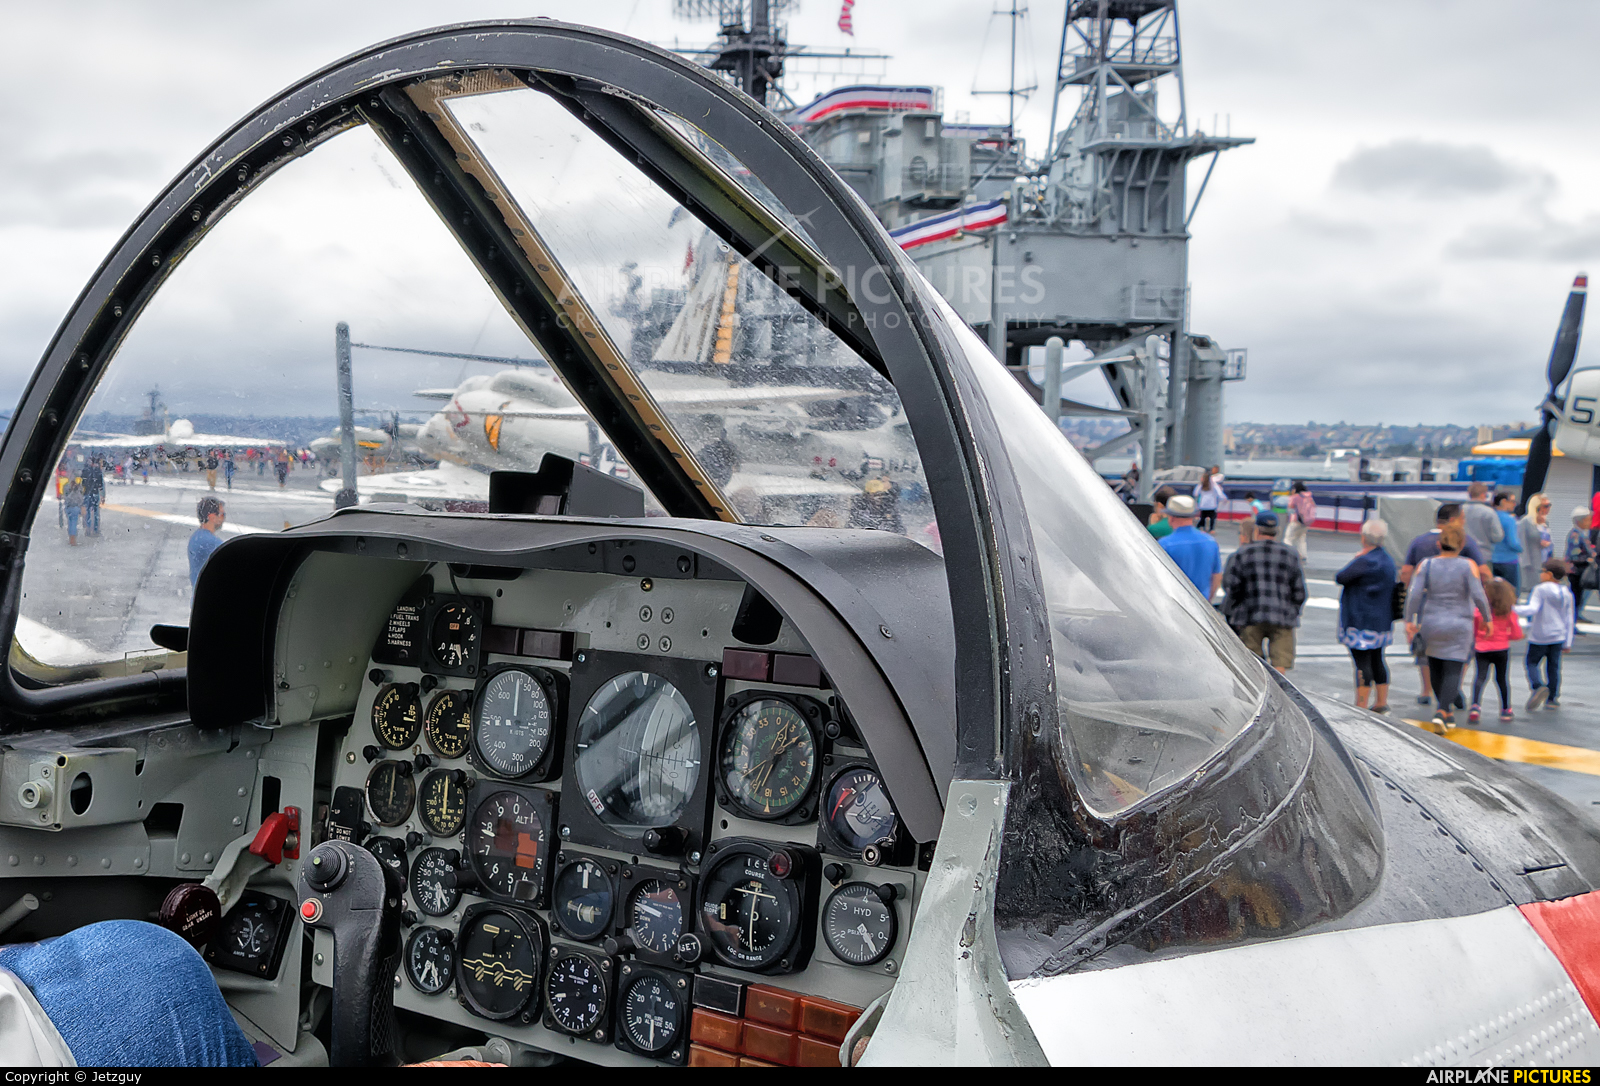 USA - Navy 156697 aircraft at San Diego - USS Midway Museum